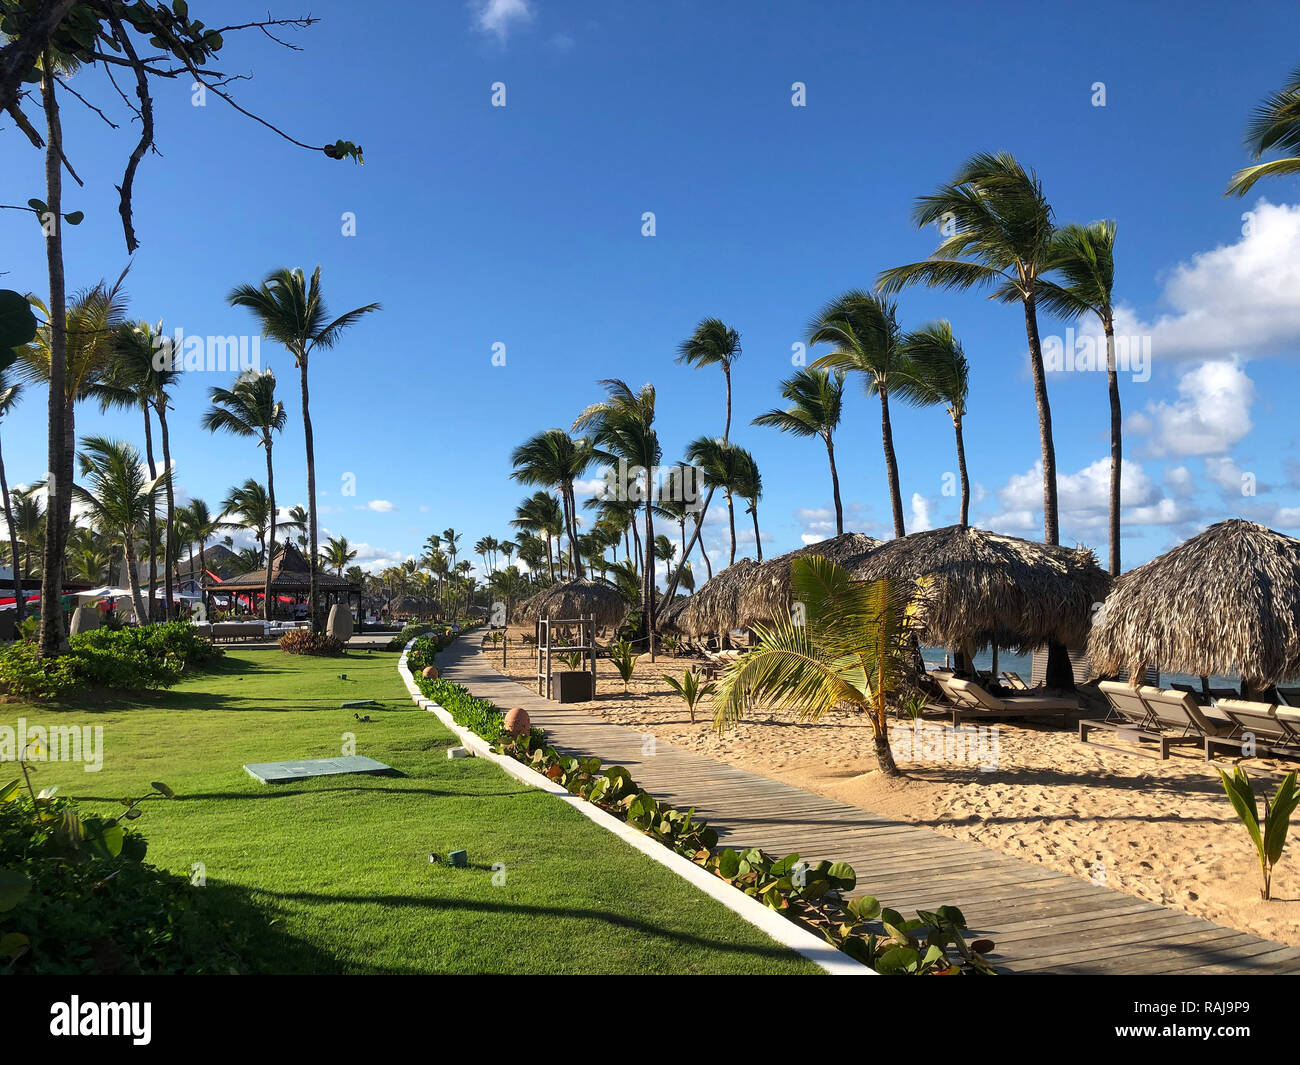 PLAYA CANA, Dominican Republic. Grounds of the Hotel Excellent. Photo: Tony Gale - Stock Image